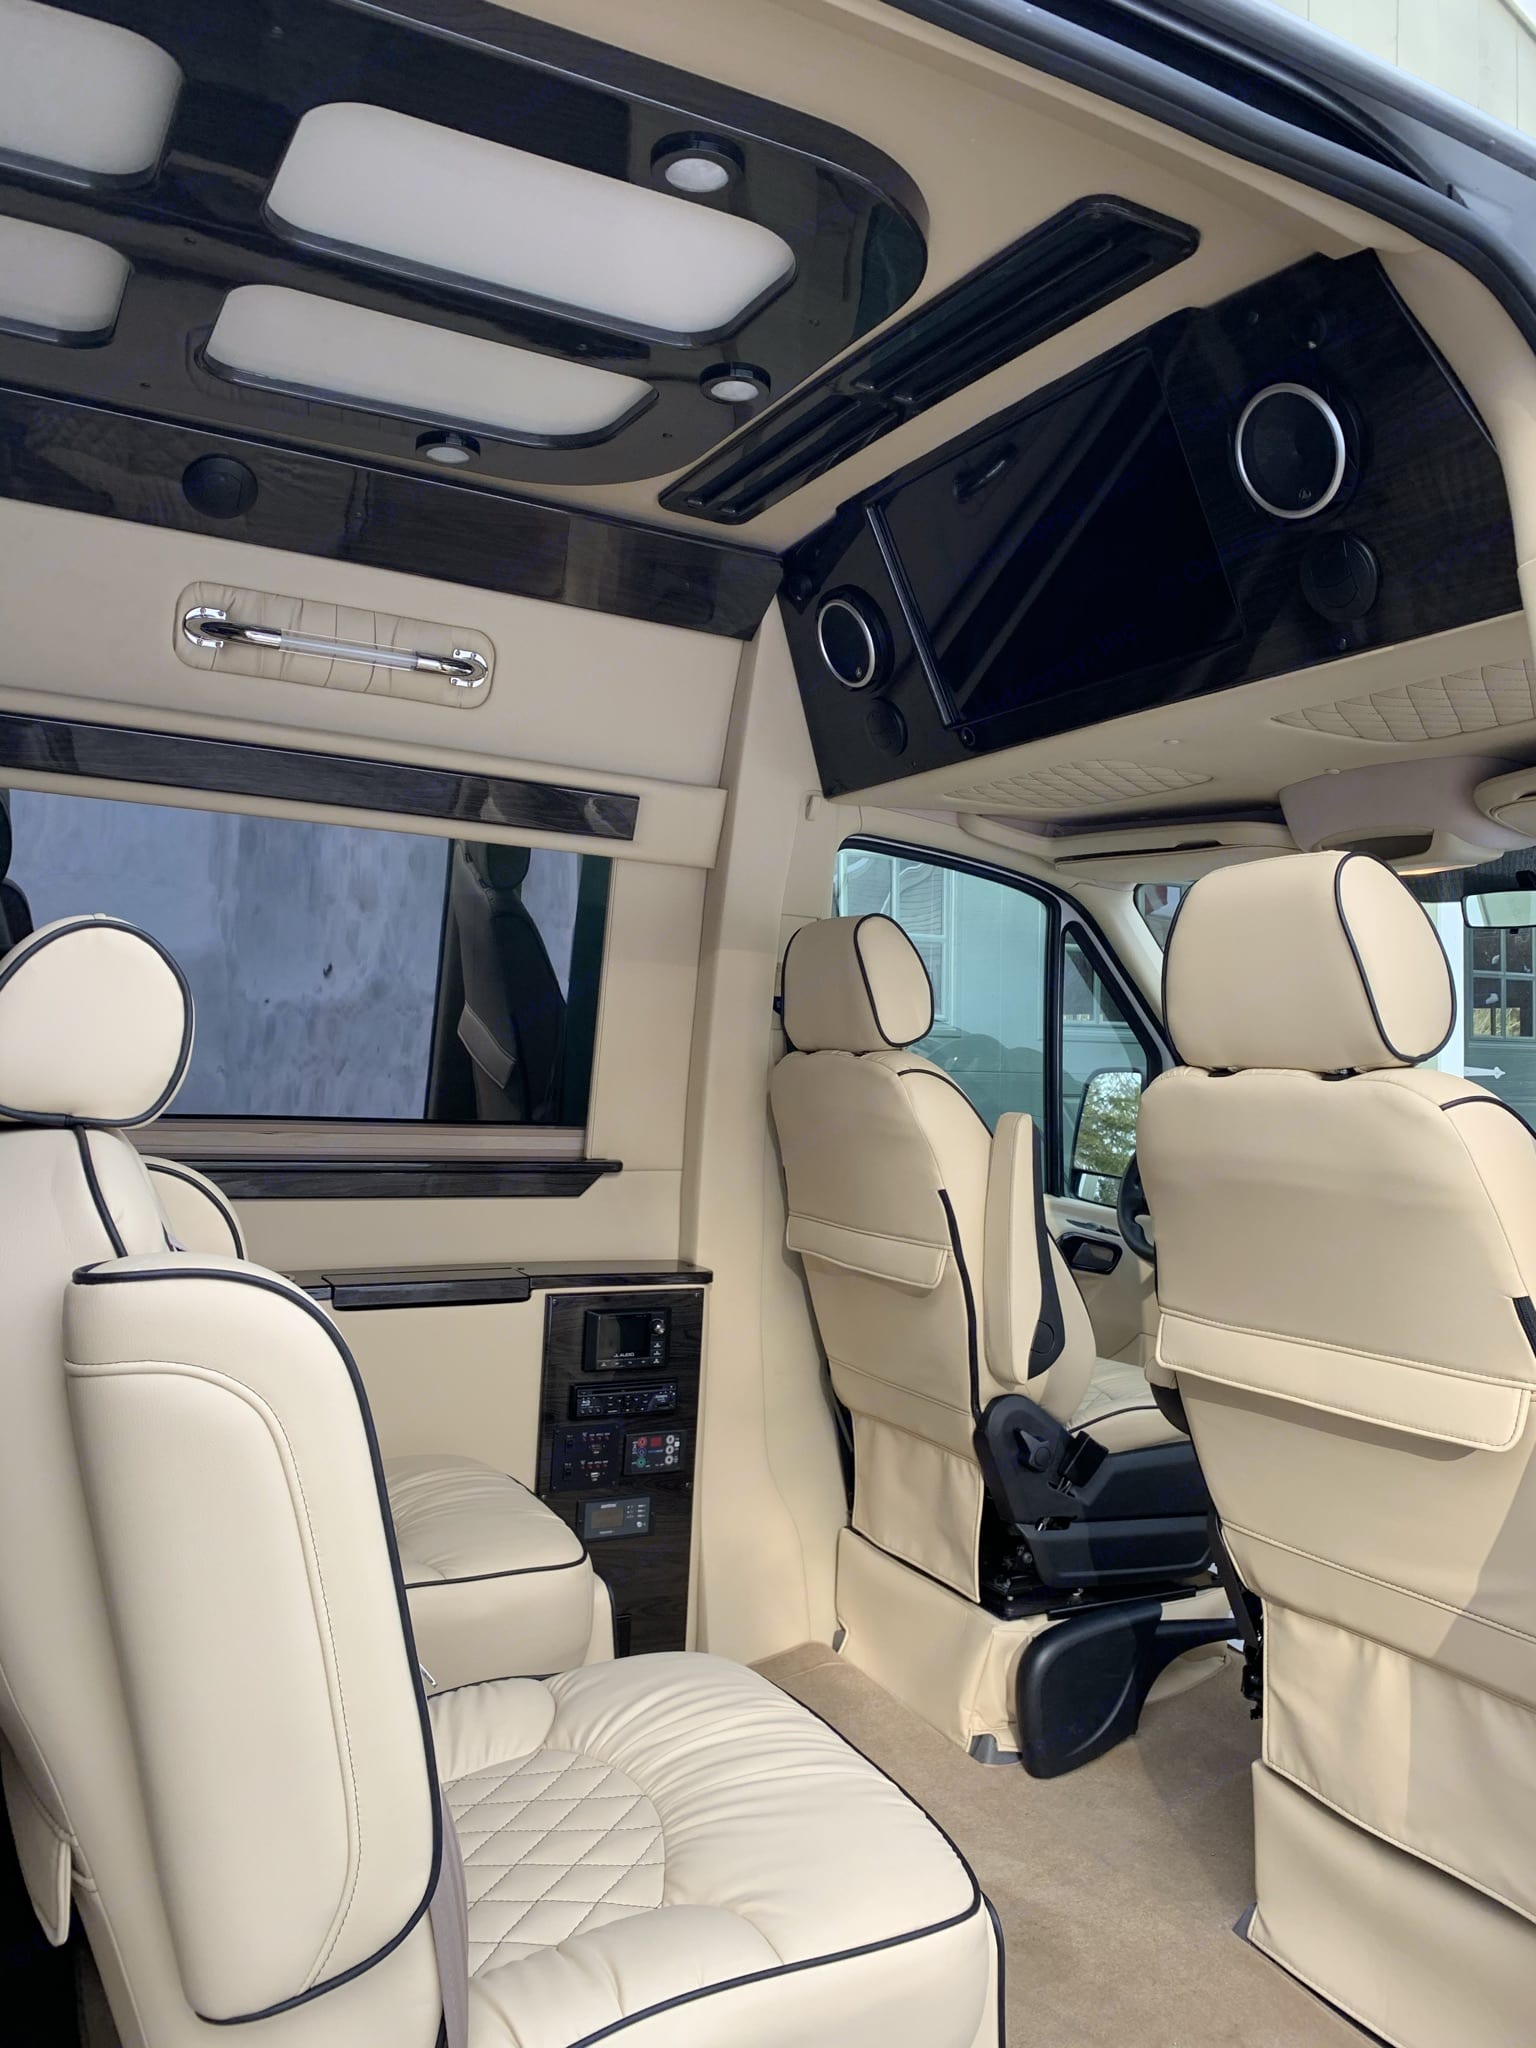 The captain's chairs swivel to facilitate conversation with the driver on family road trips or to create club seating with the chairs behind.. Mercedes-Benz Sprinter 2018